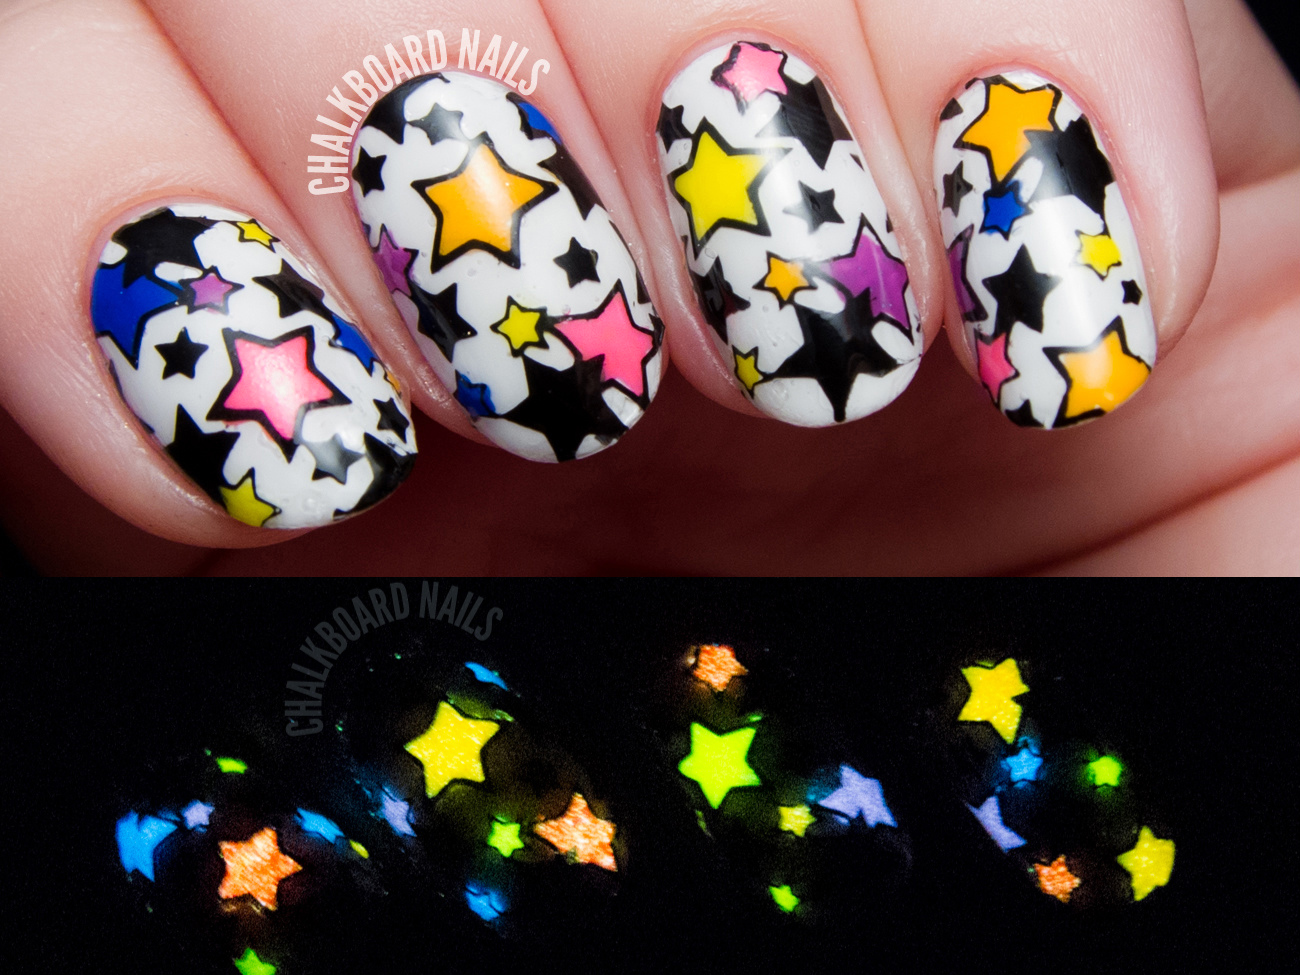 Glow in the dark star nail art by @chalkboardnails